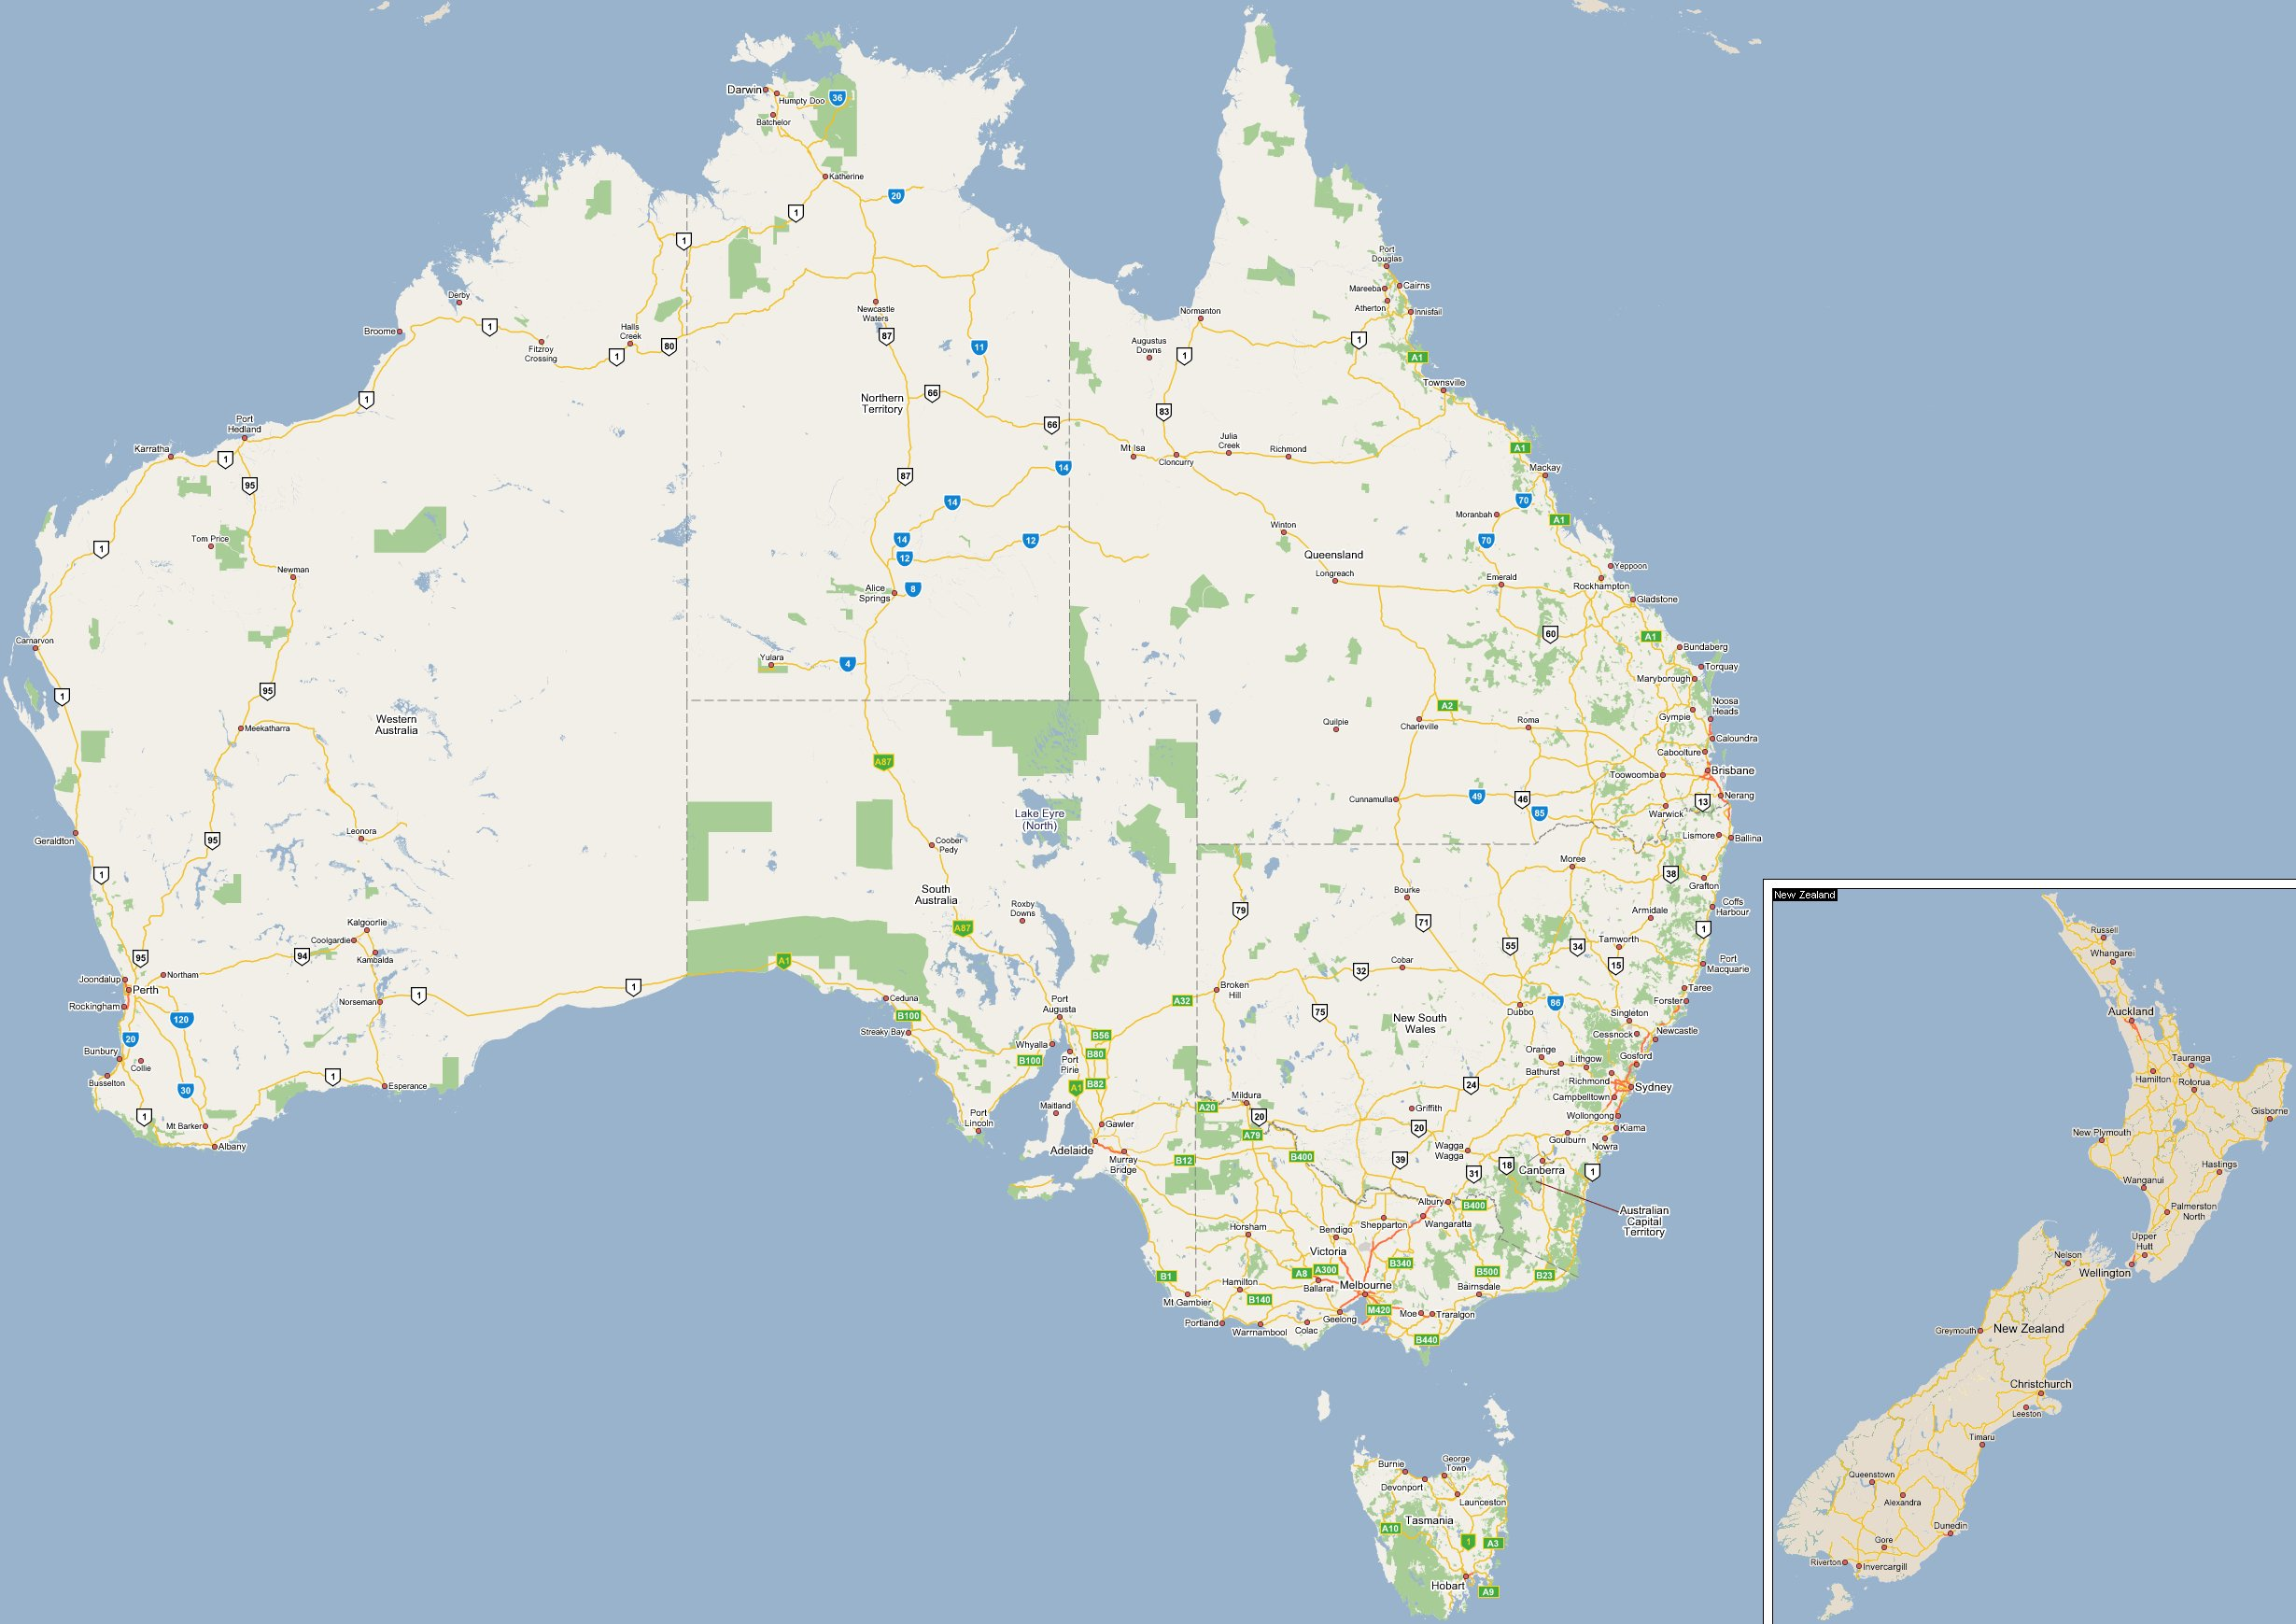 Footiemap australia 2014 2015 map of top tier australian footiemap australia 2014 2015 map of top tier australian football club stadiums sciox Images